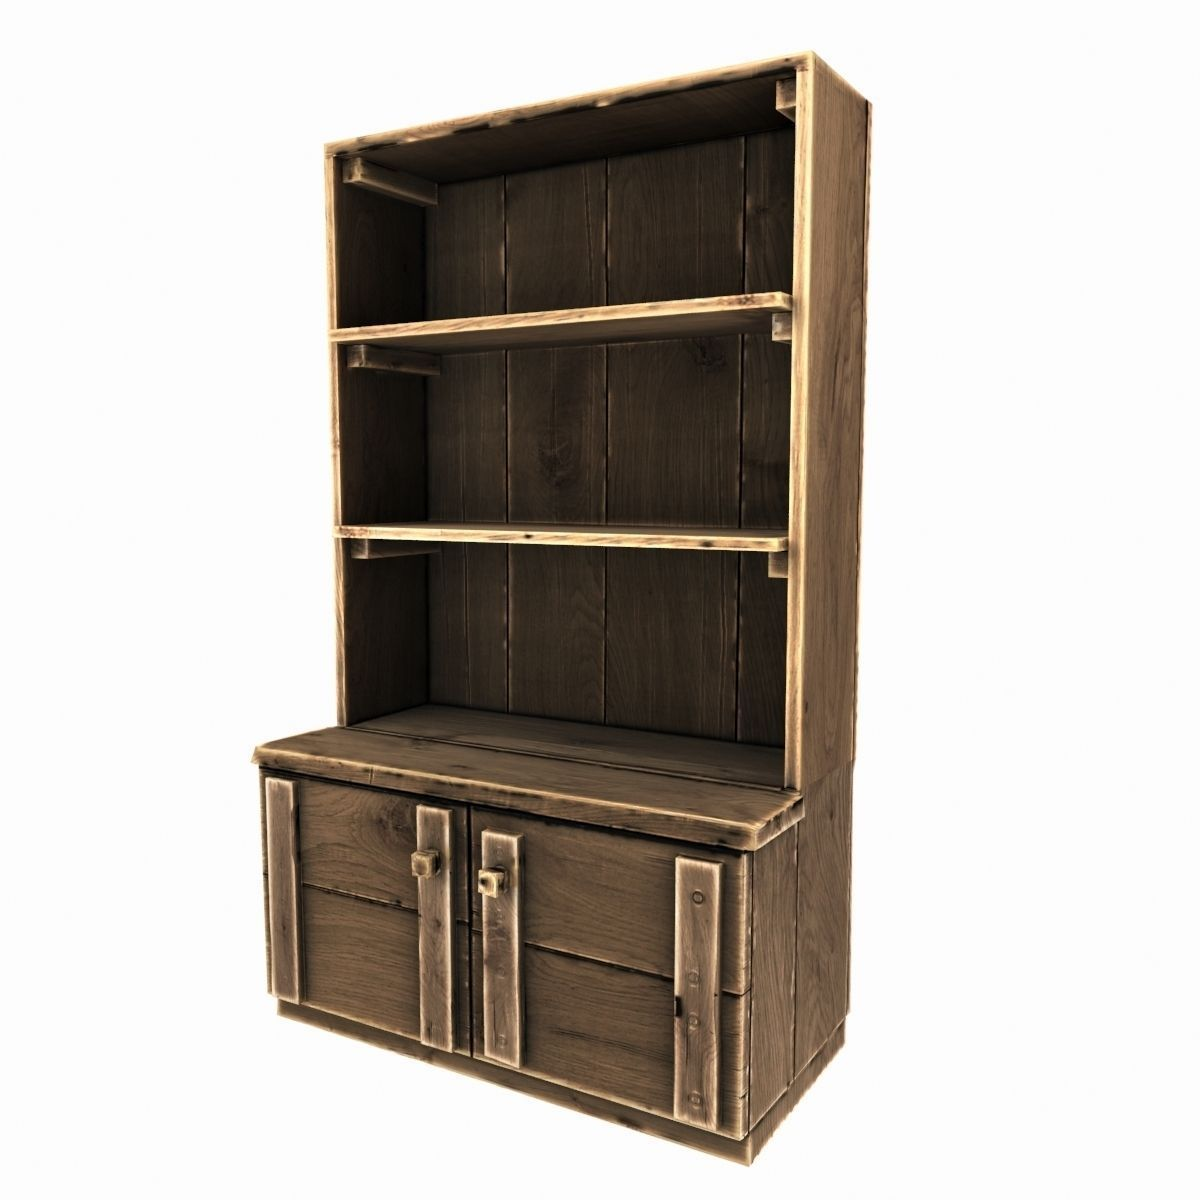 oak l refno cupboards shelves antique wall wooden cupboard old georgian hanging